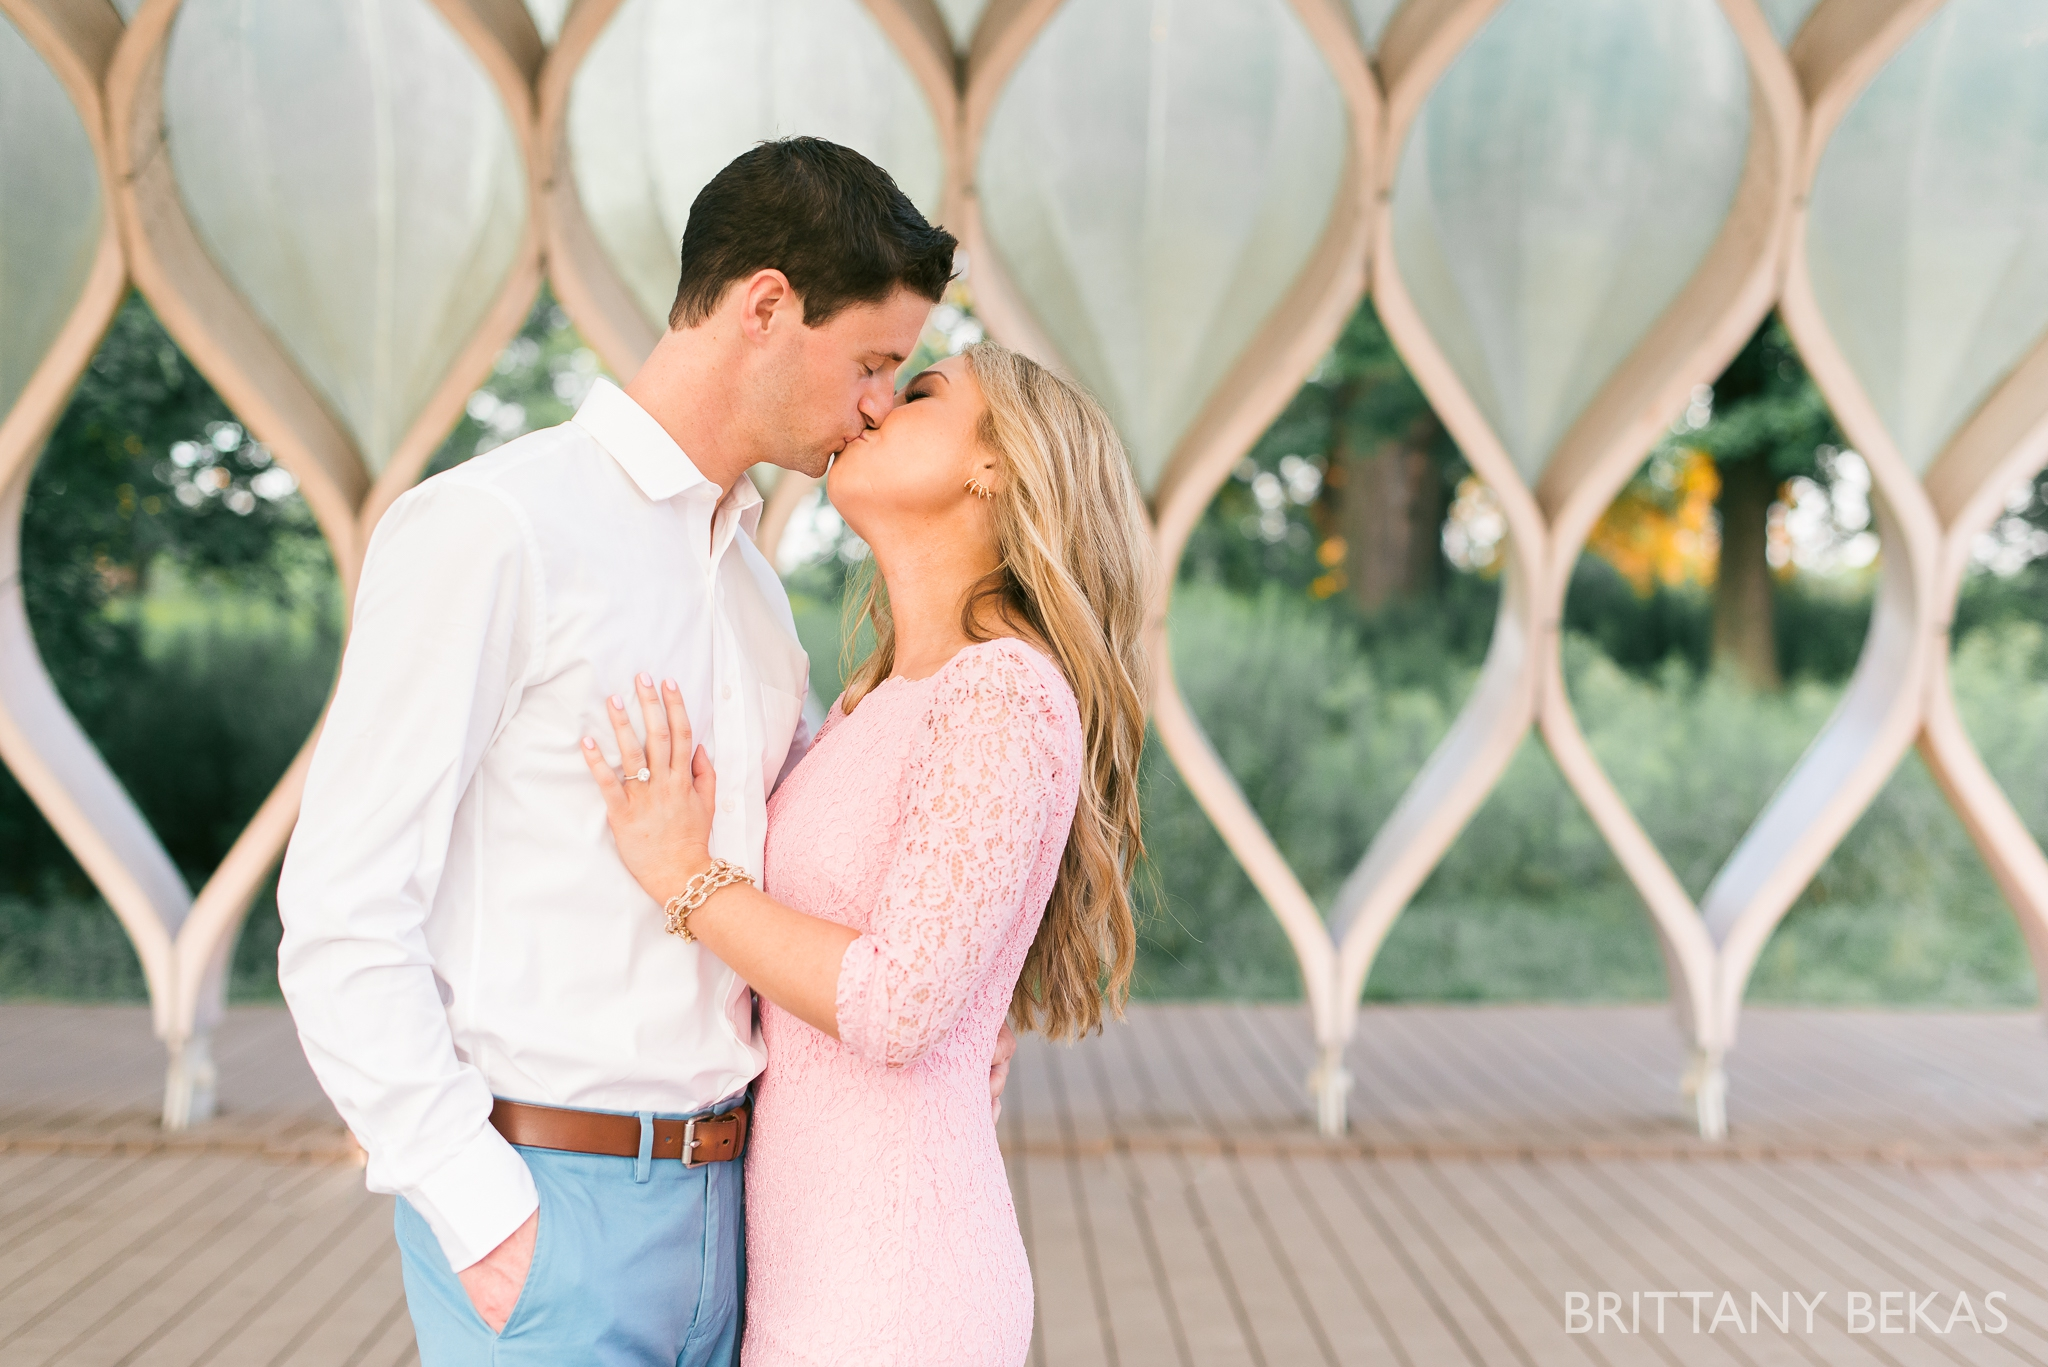 lincoln-park-chicago-engagement-photos-brittany-bekas-photography_0020